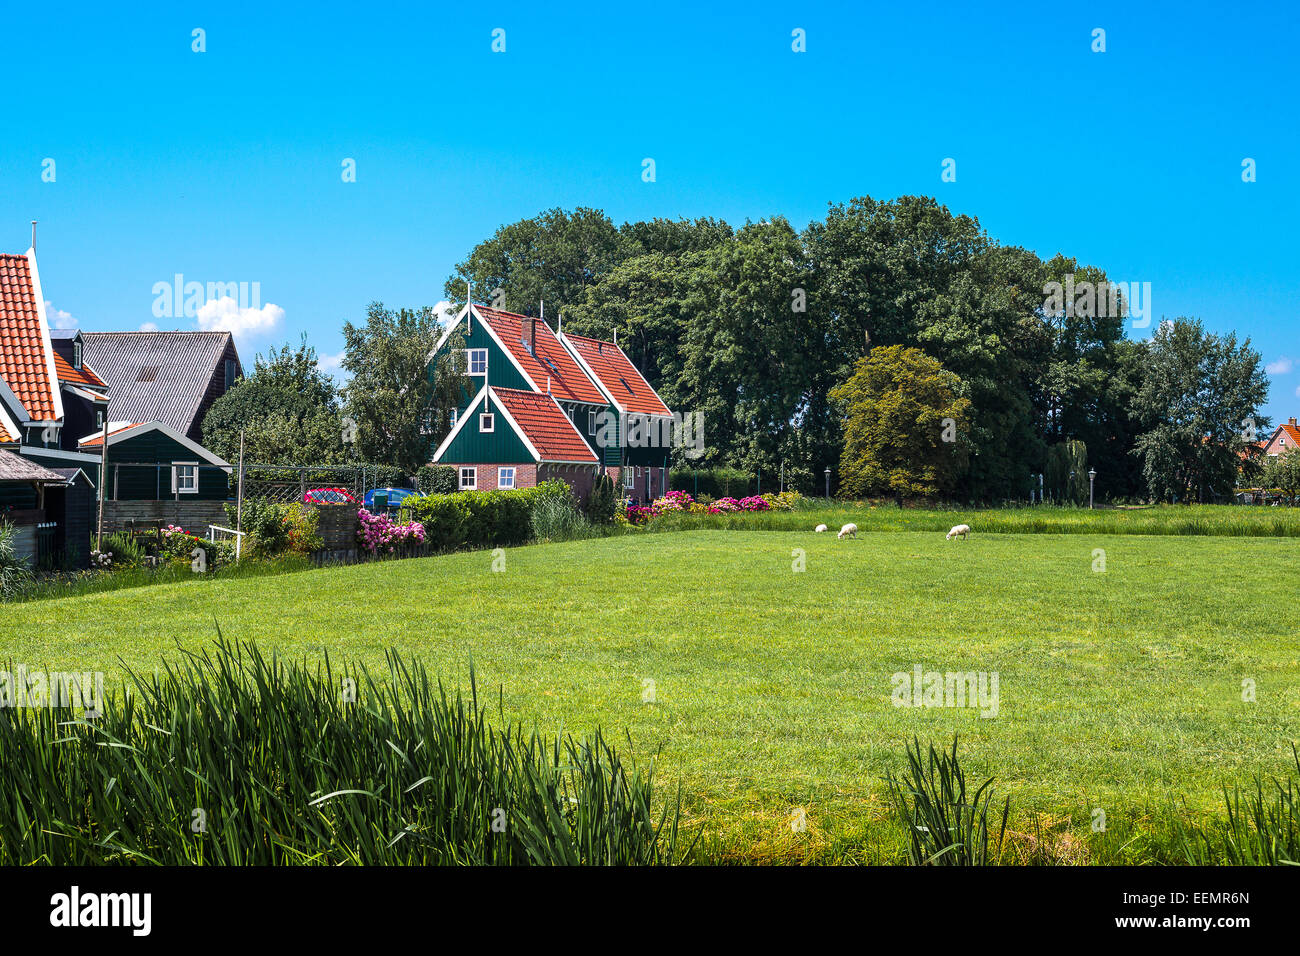 Amsterdam, Waterland district, Marken, typical country houses near the village. Stock Photo